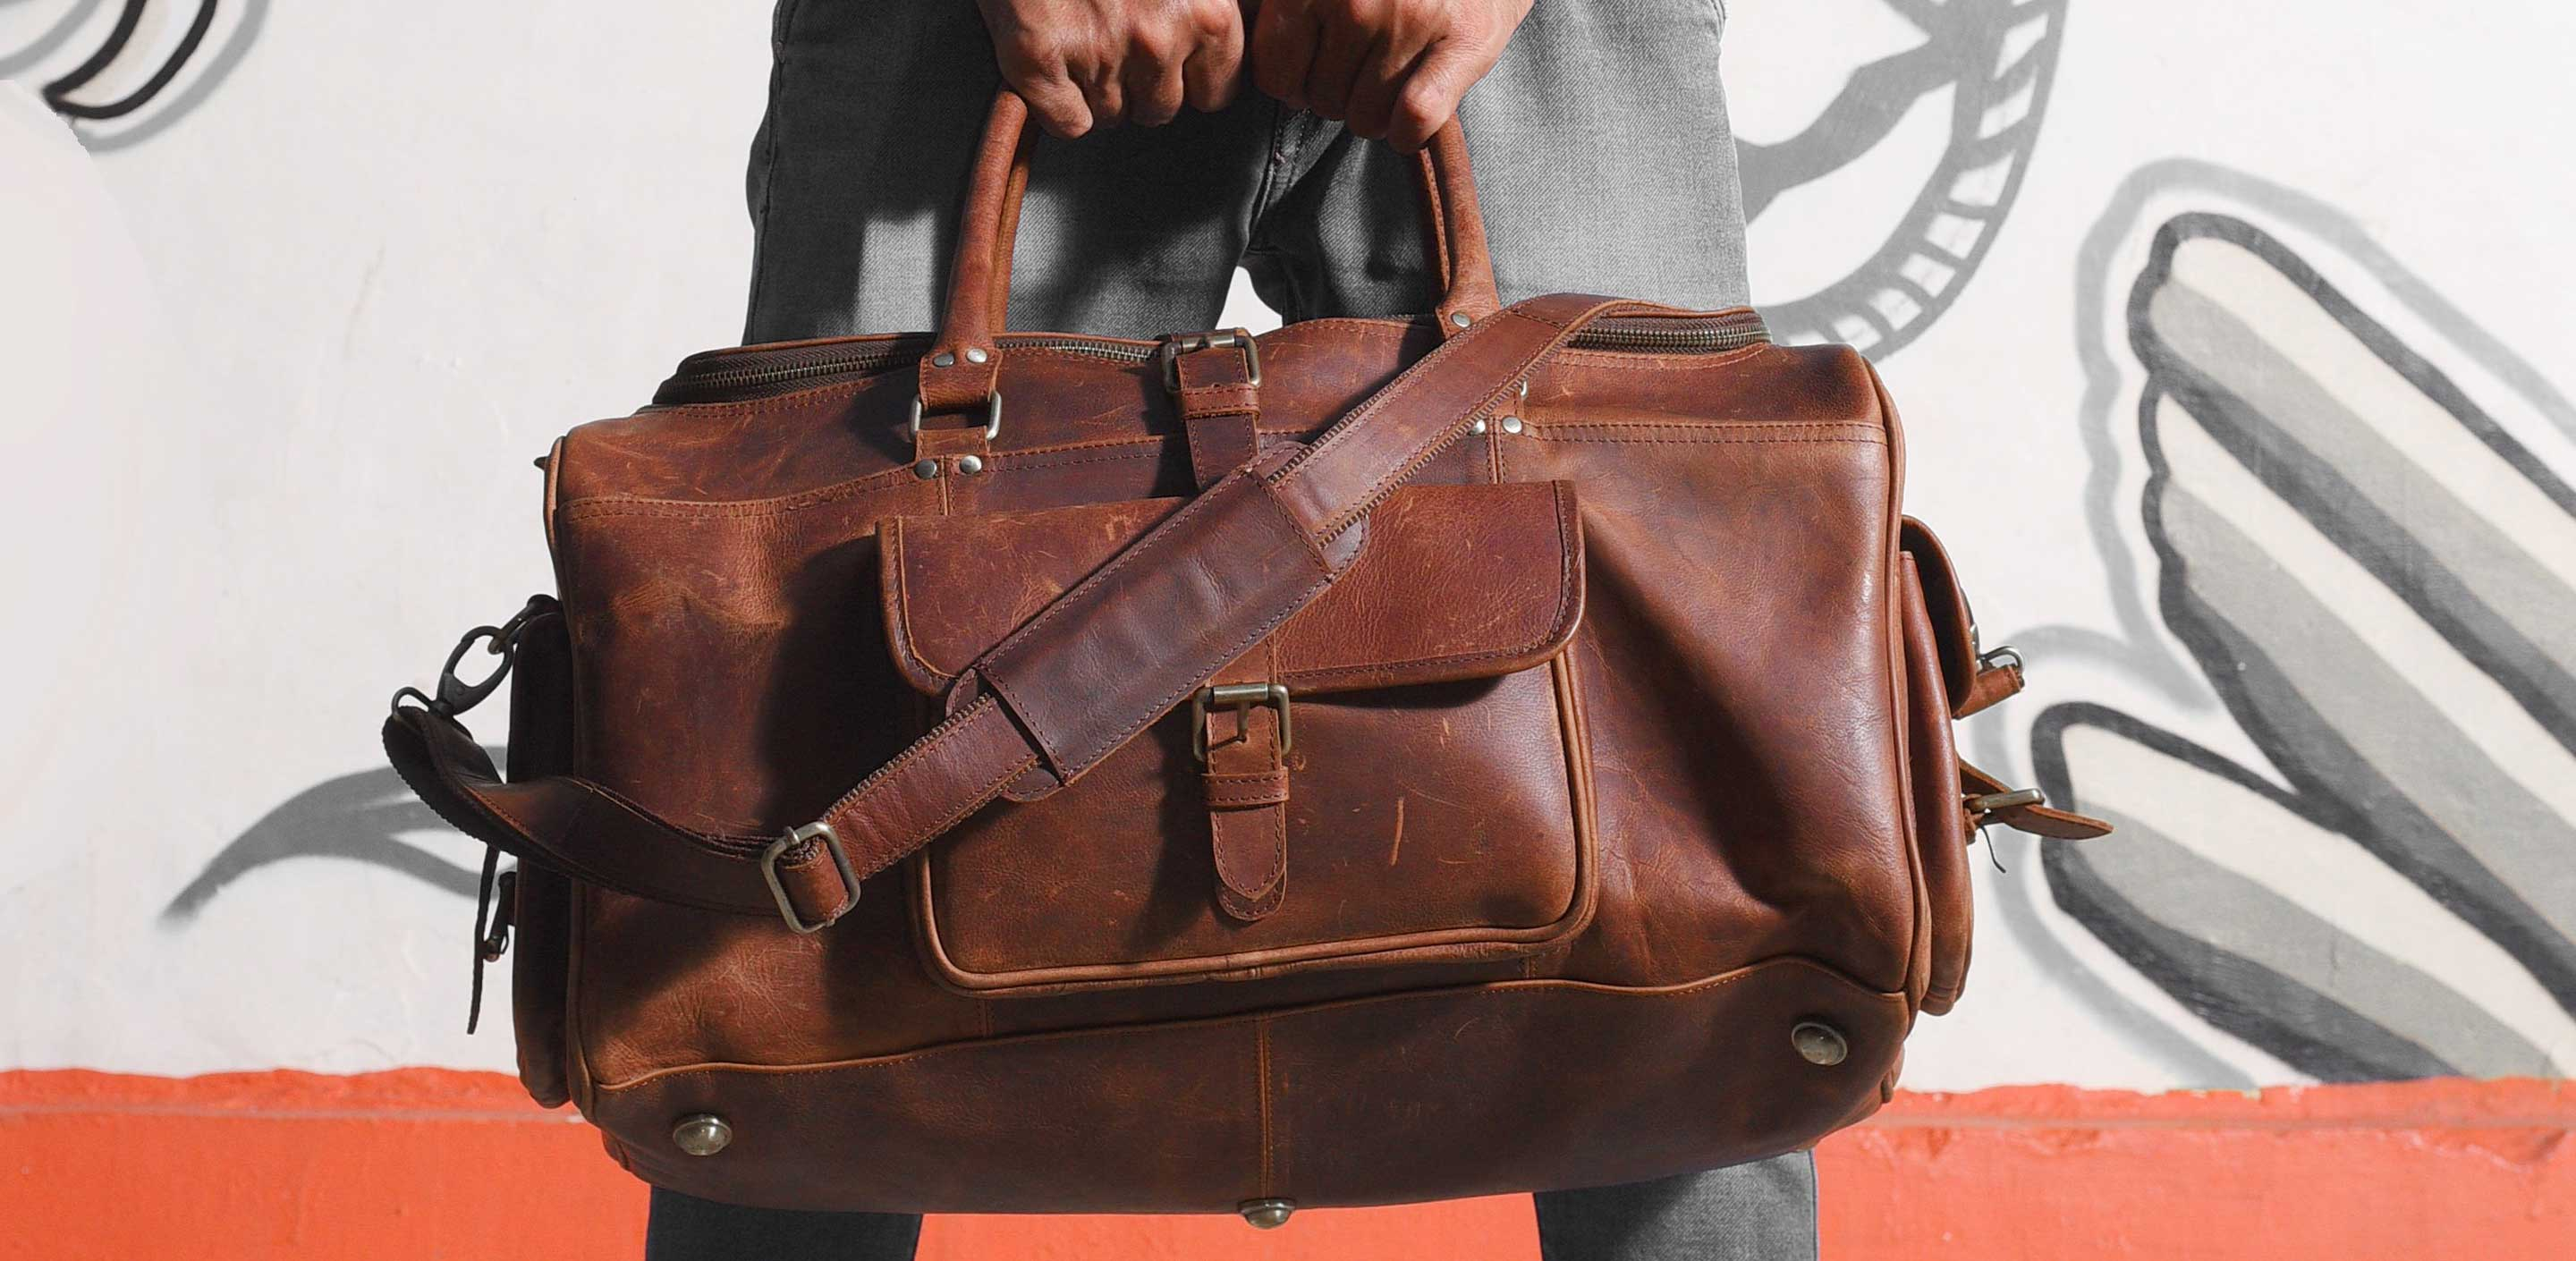 Are Leather Duffel Bags Allowed On Planes?